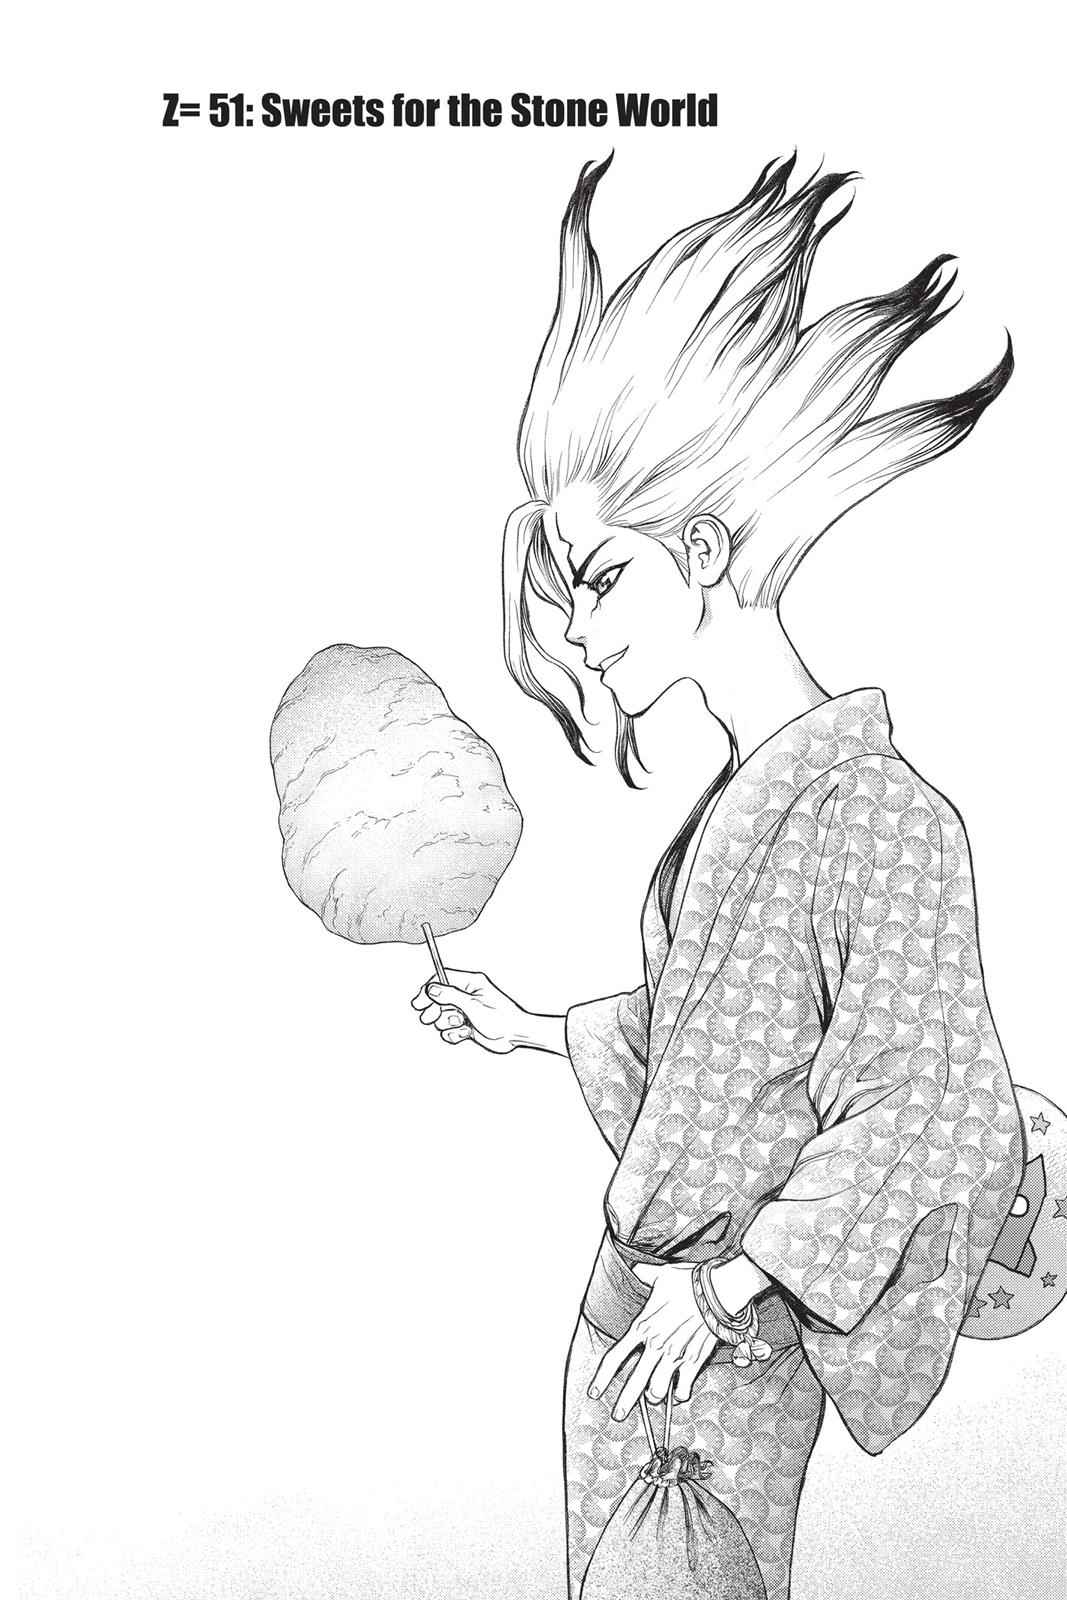 Dr. Stone Chapter 51 Page 5